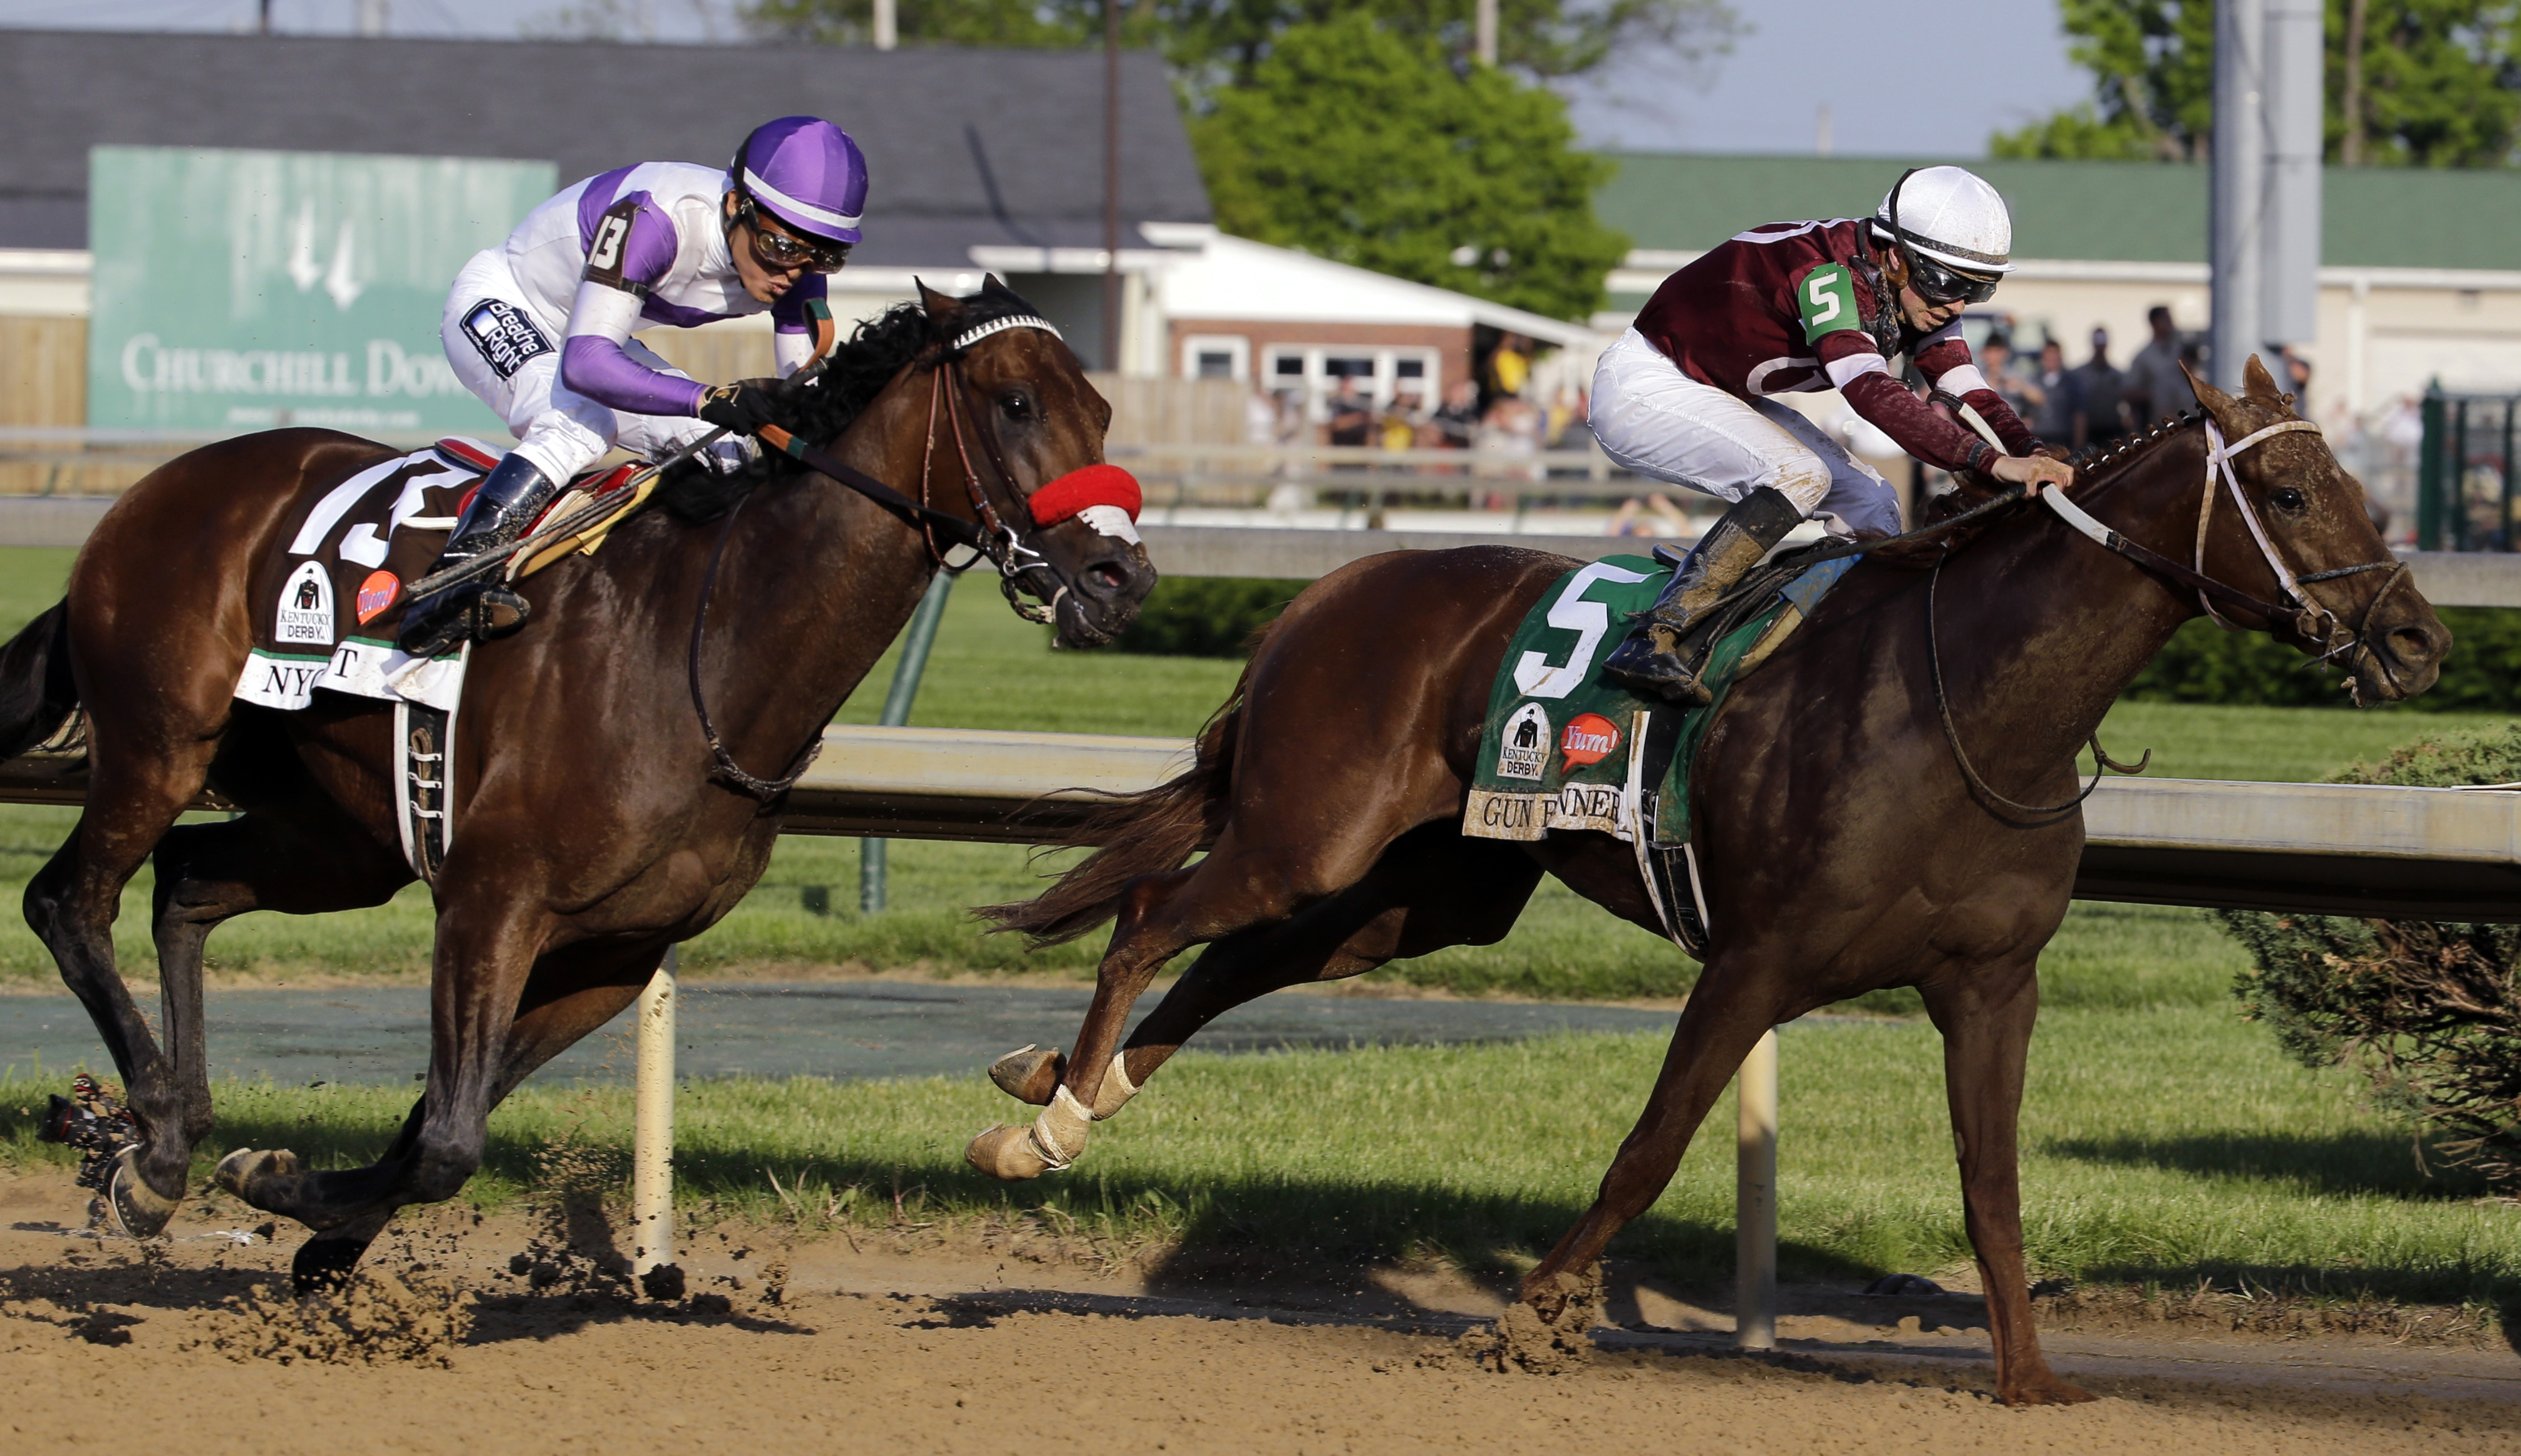 FILE - In this May 7, 2016, file photo,  Nyquist, left, ridden by Mario Gutierrez, rides past Gun Runner during the 142nd running of the Kentucky Derby horse race at Churchill Downs in Louisville, Ky. Gun Runner, third-place finisher in the Kentucky Derby